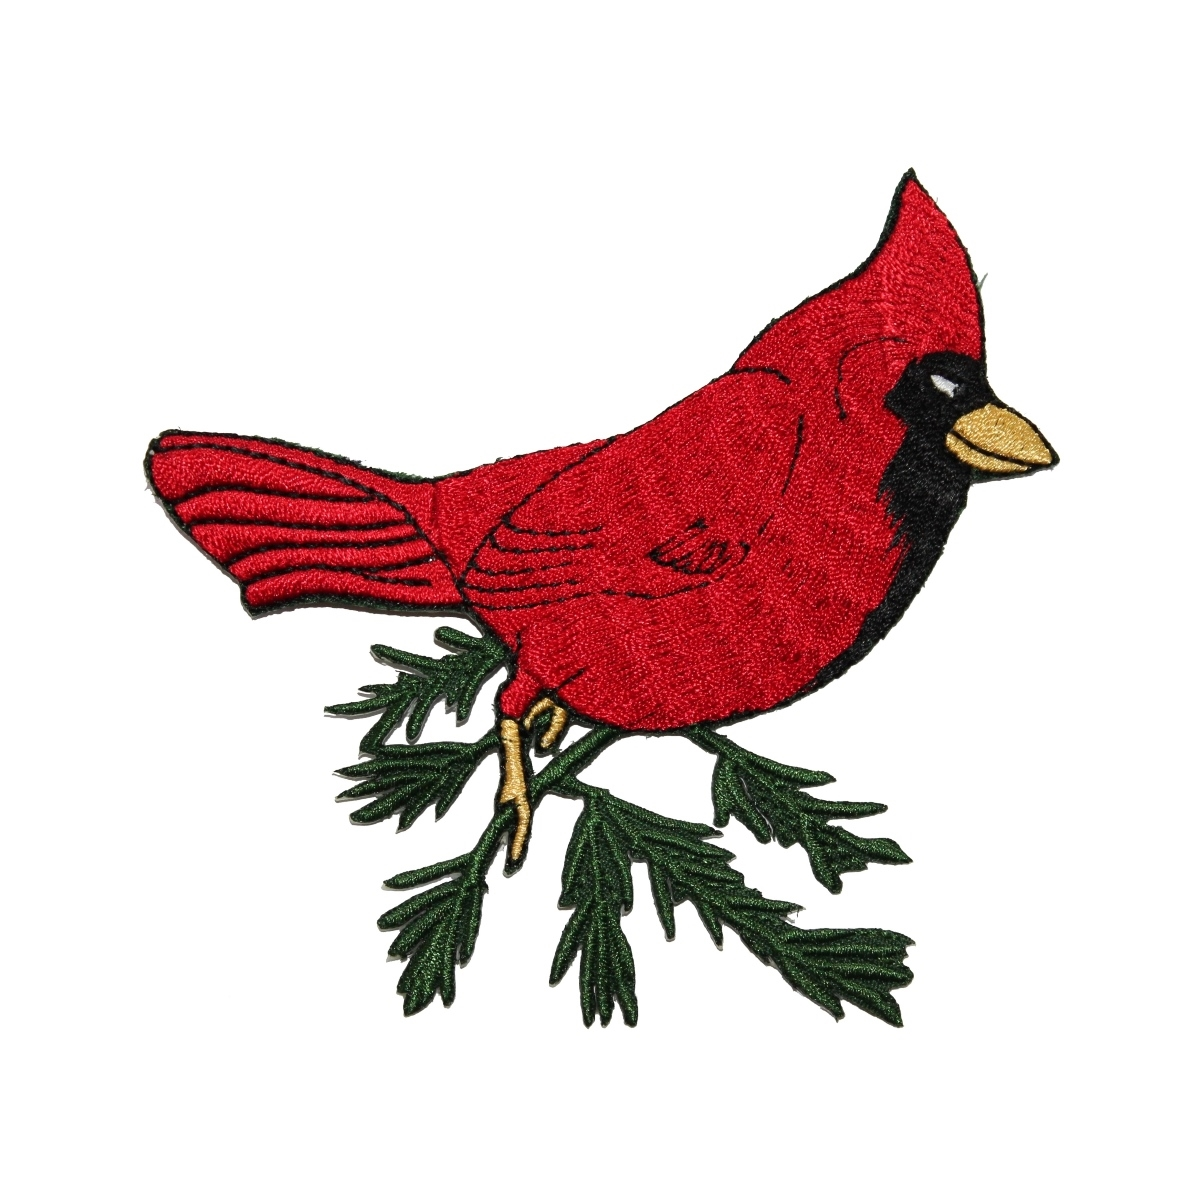 ID 3608 Cardinal on Branch Patch Bird Perch Nest Embroidered Iron On Applique